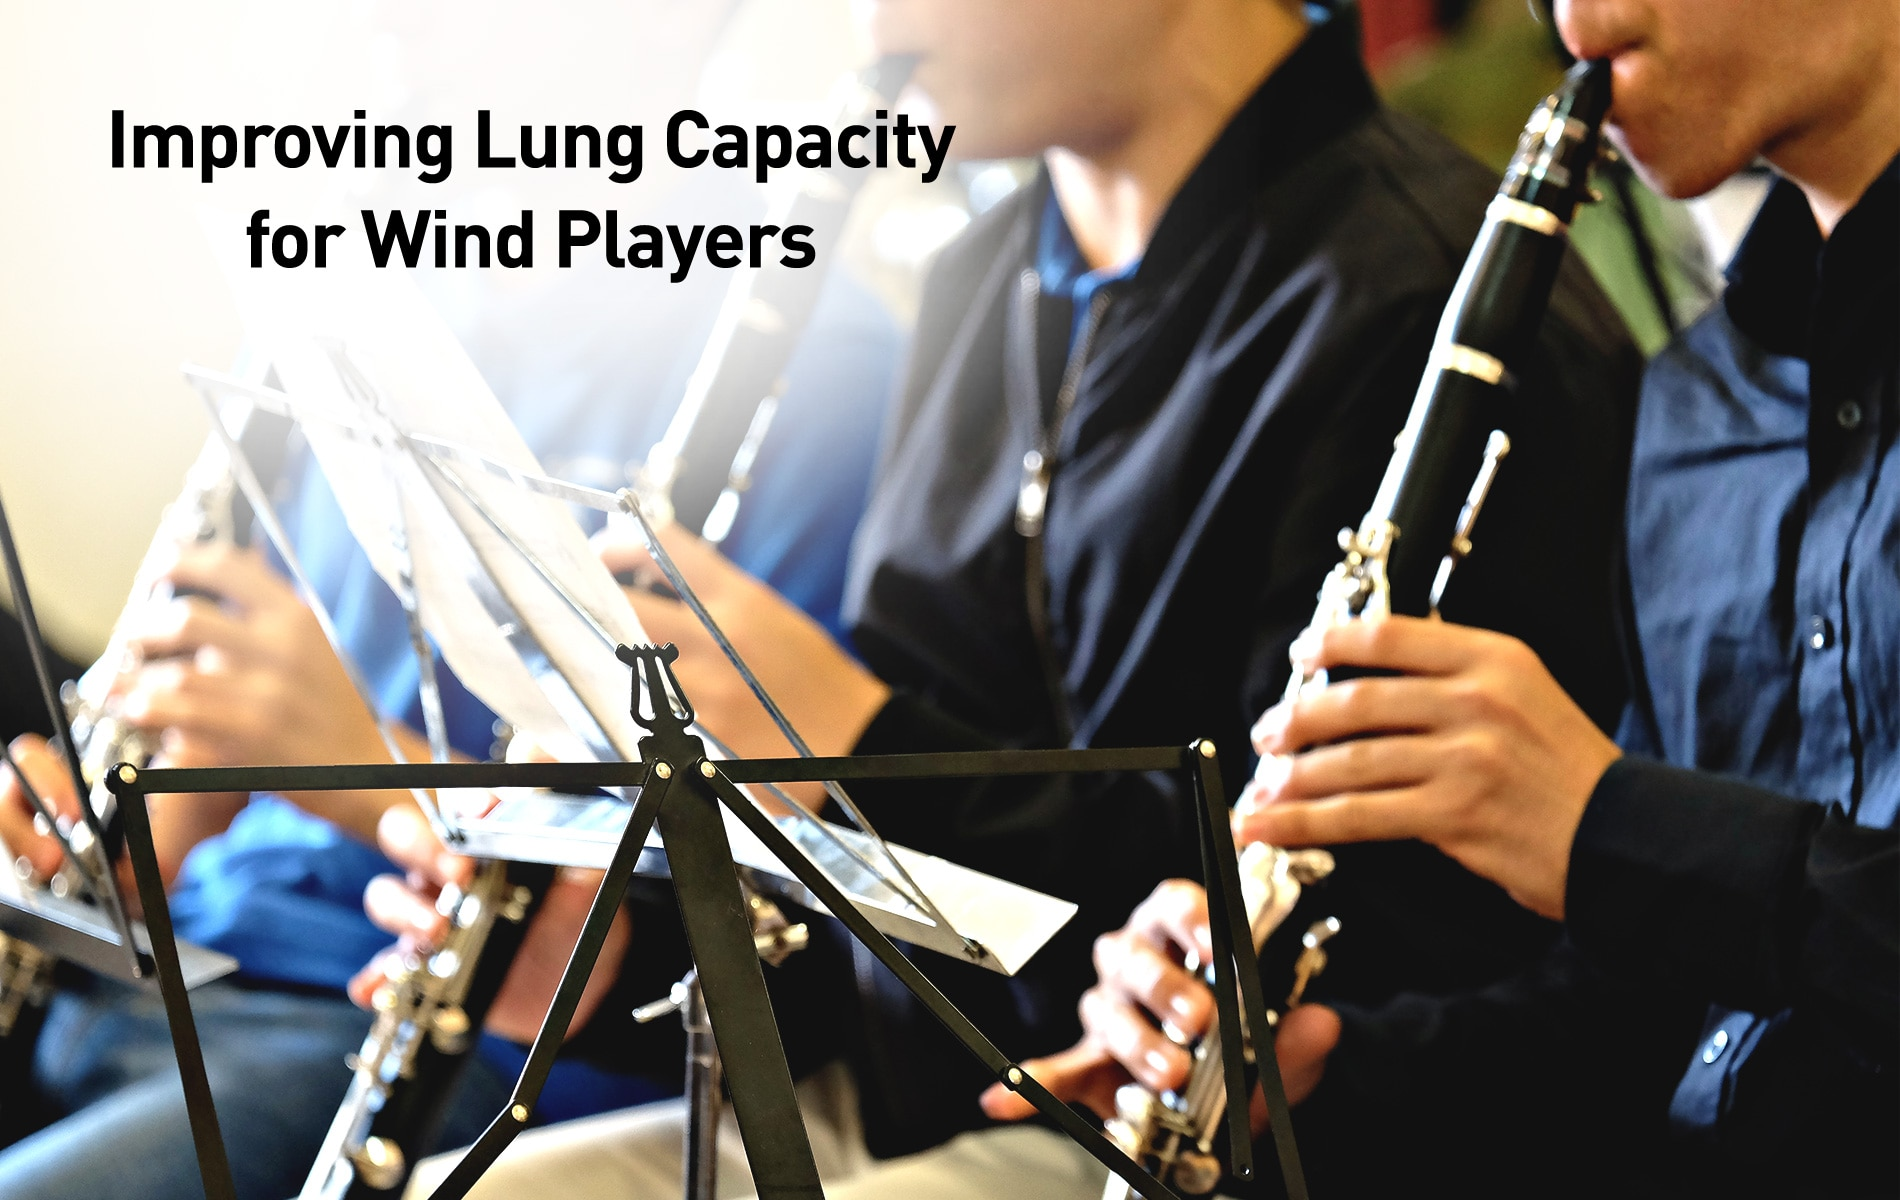 Improving Lung Capacity for Wind Players